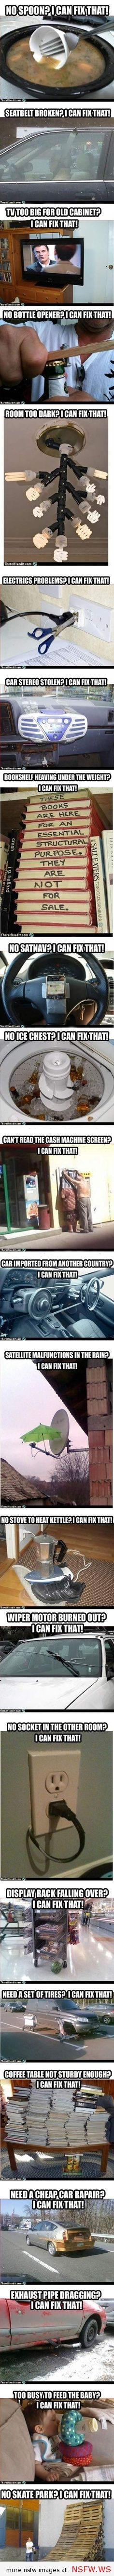 You can fix anything! Just gotta use your head